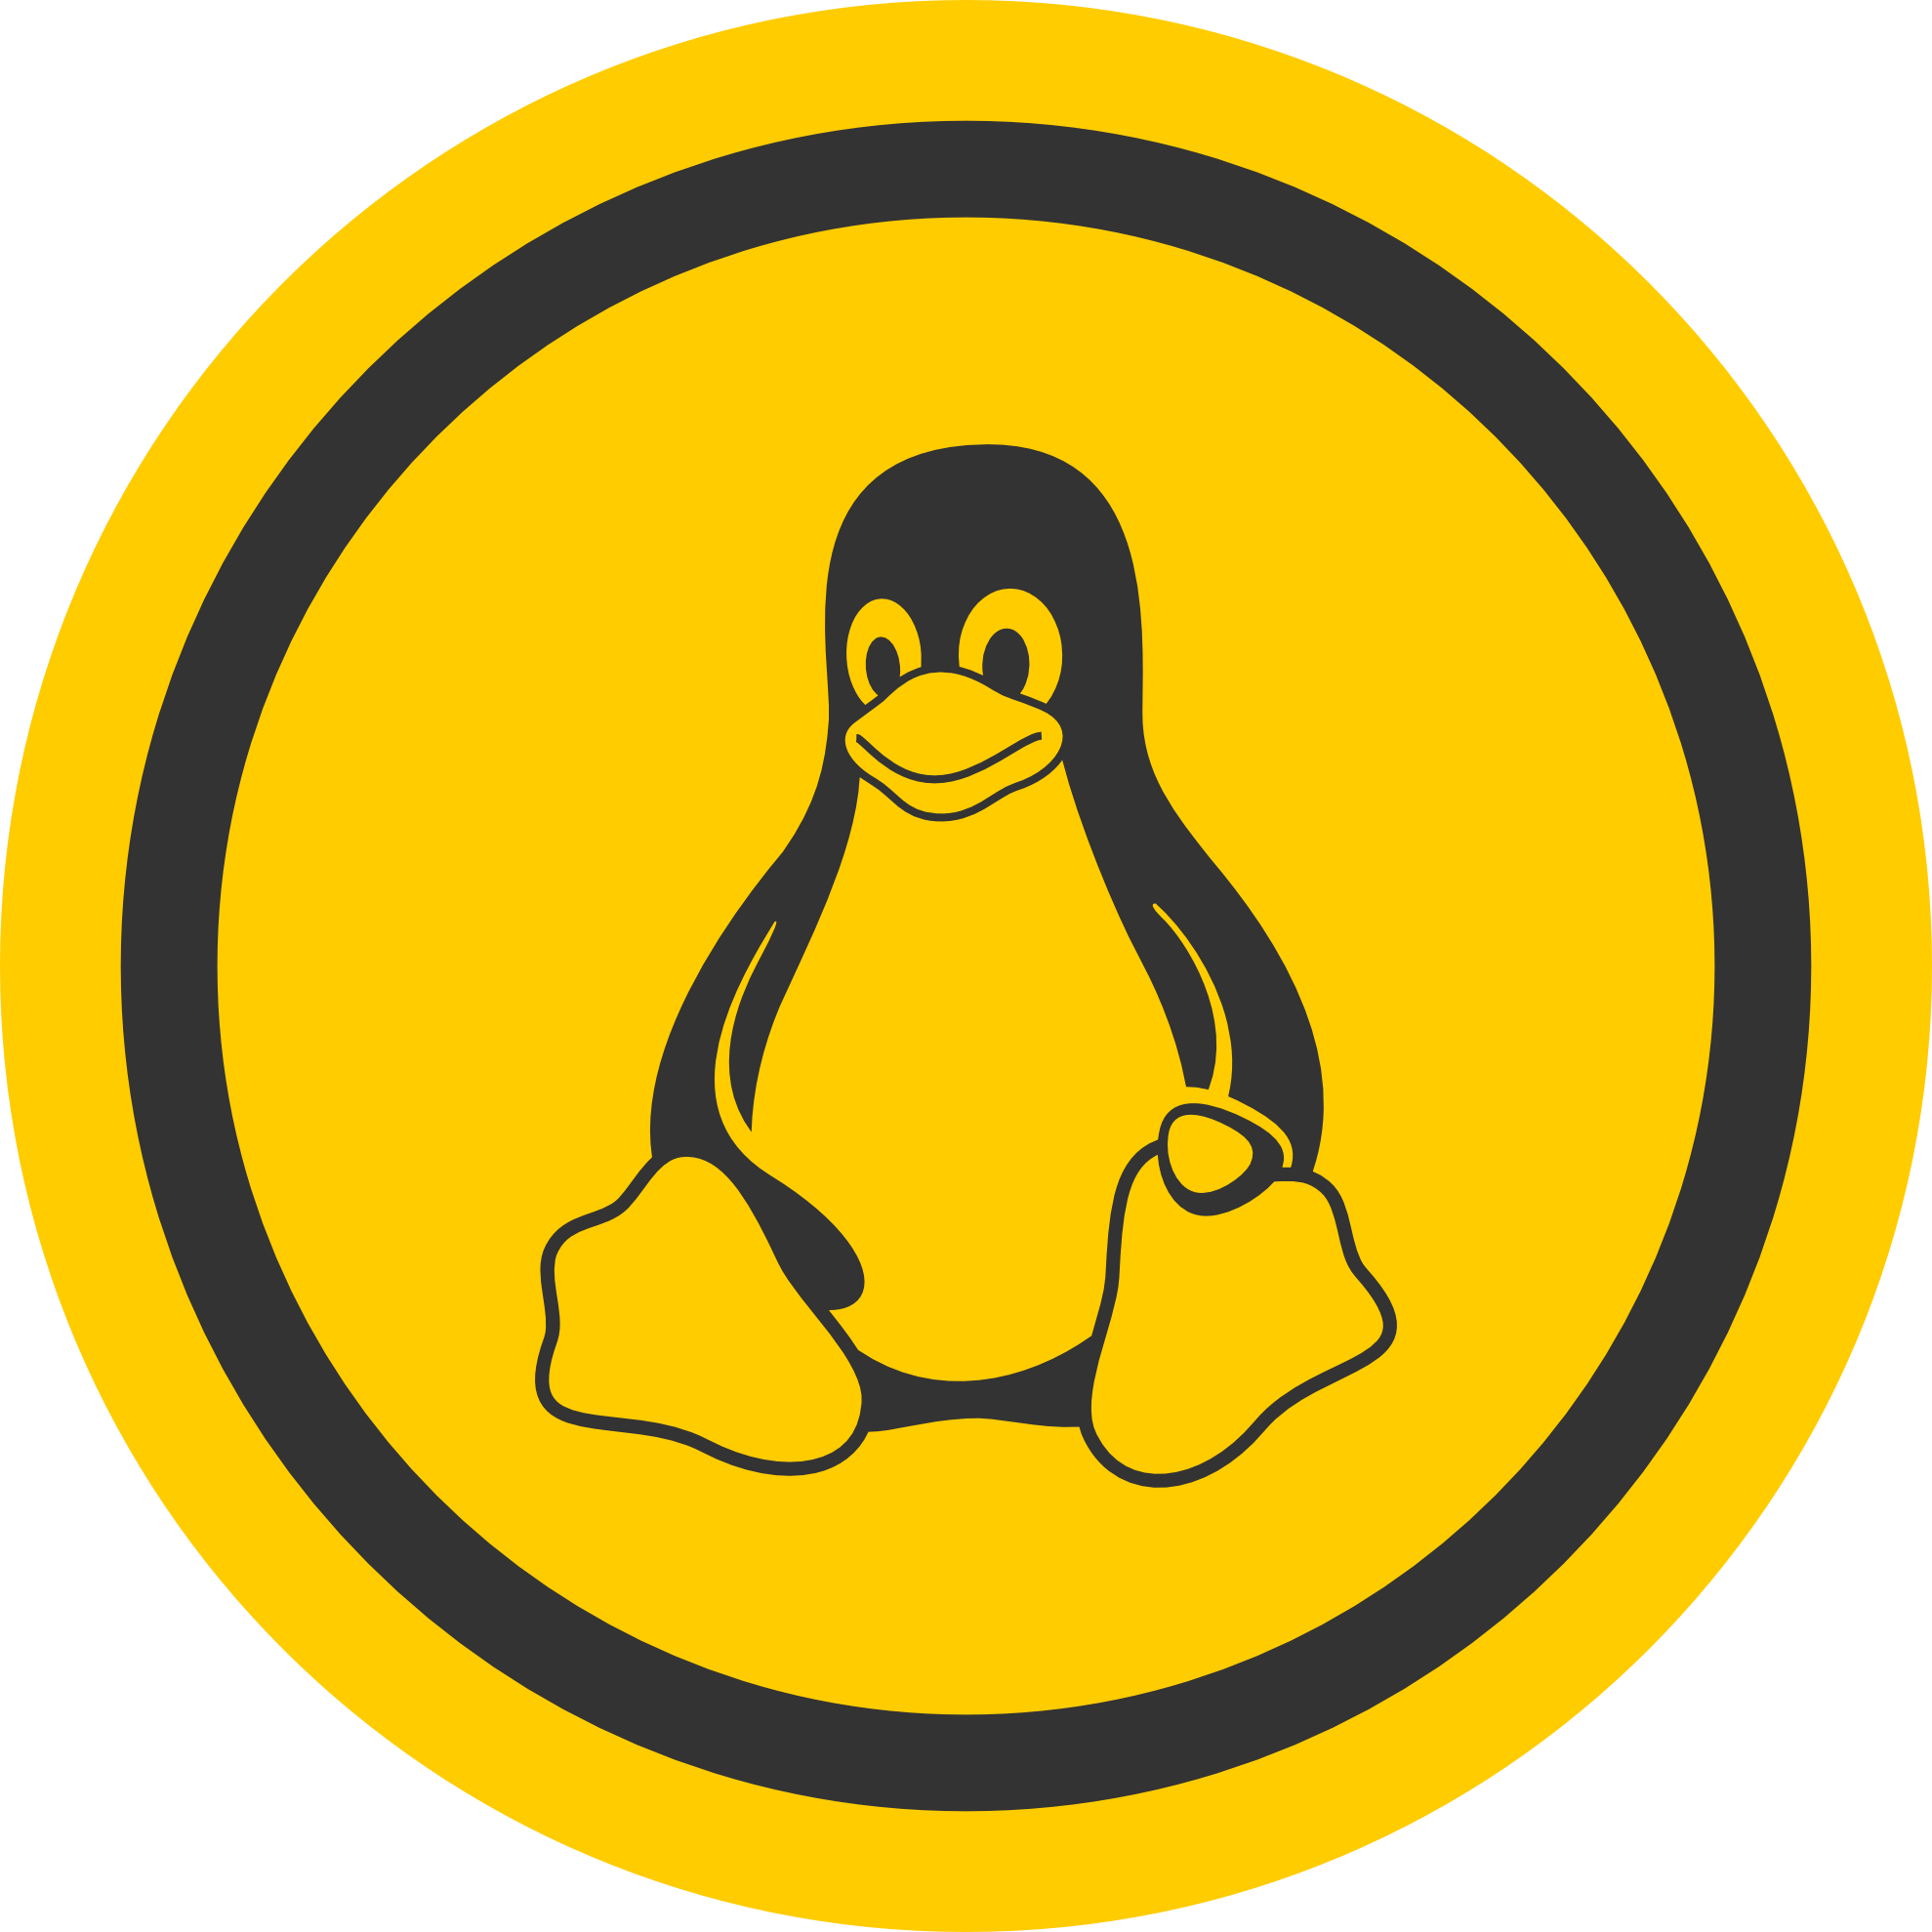 Linux clipart #11, Download drawings